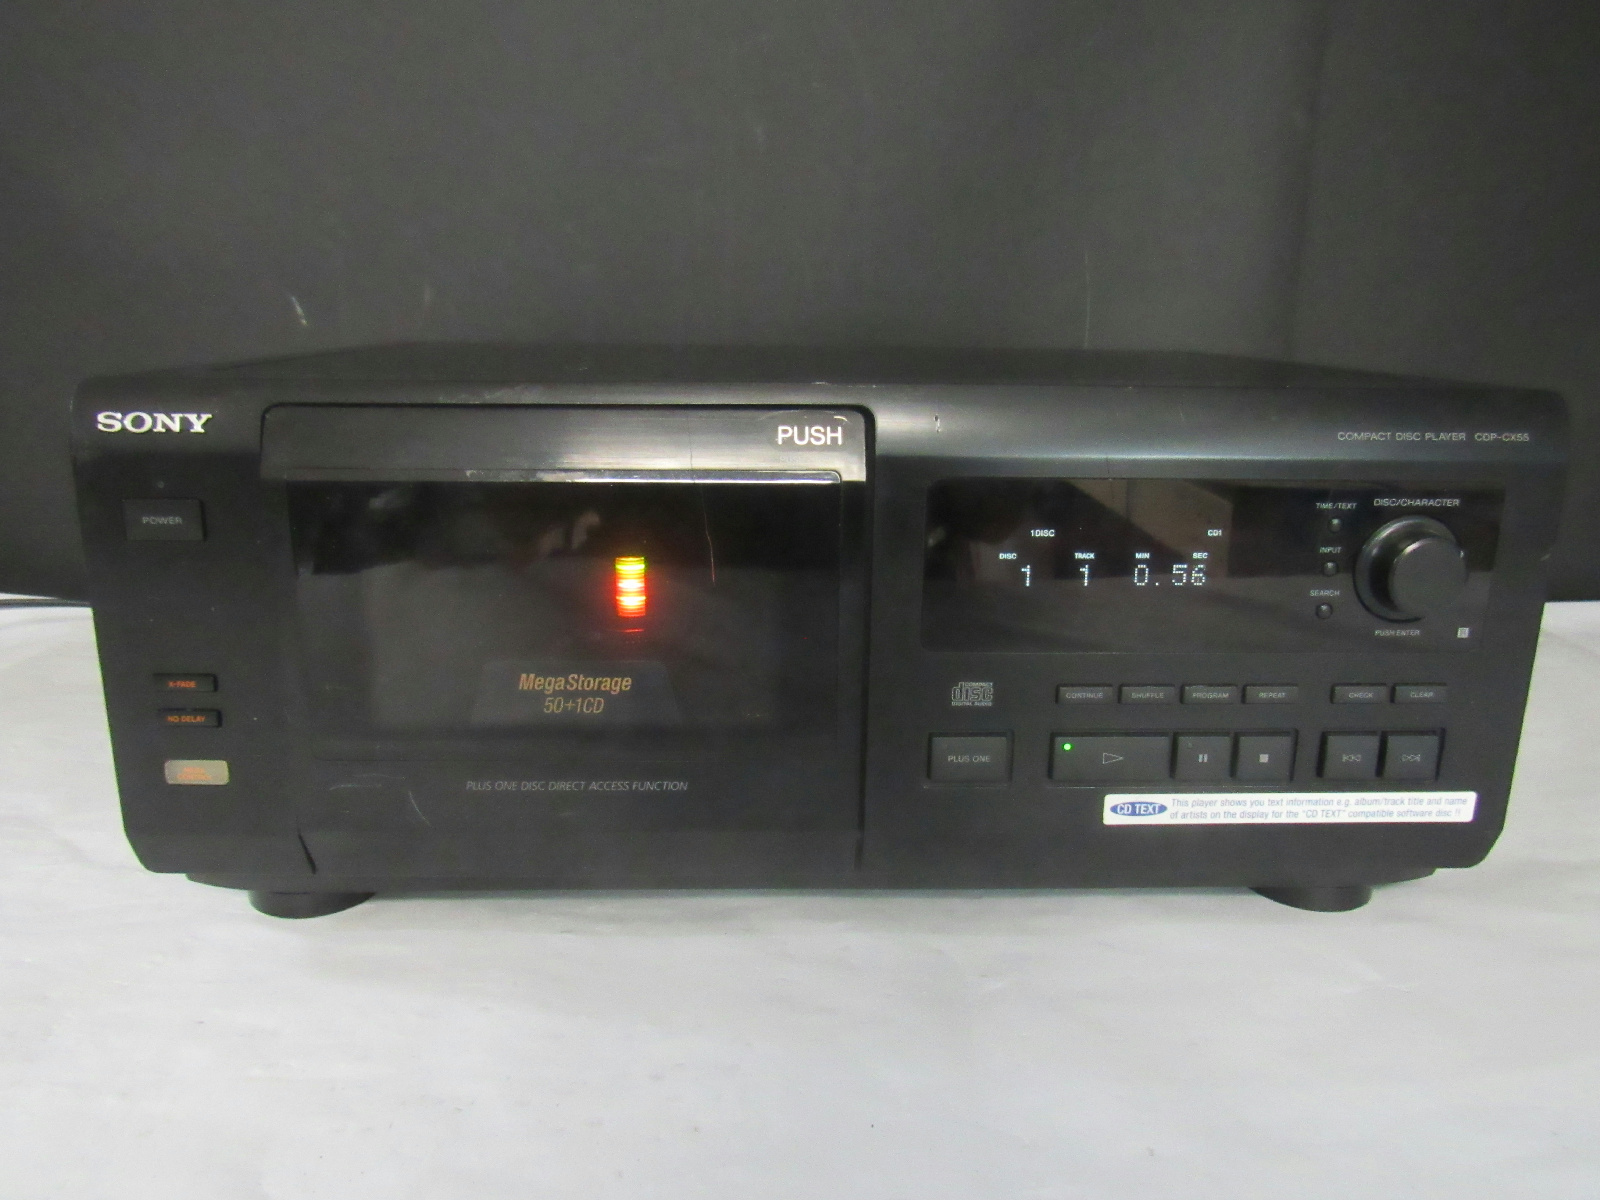 sony compact disc player cdp cx55 no remote. Black Bedroom Furniture Sets. Home Design Ideas